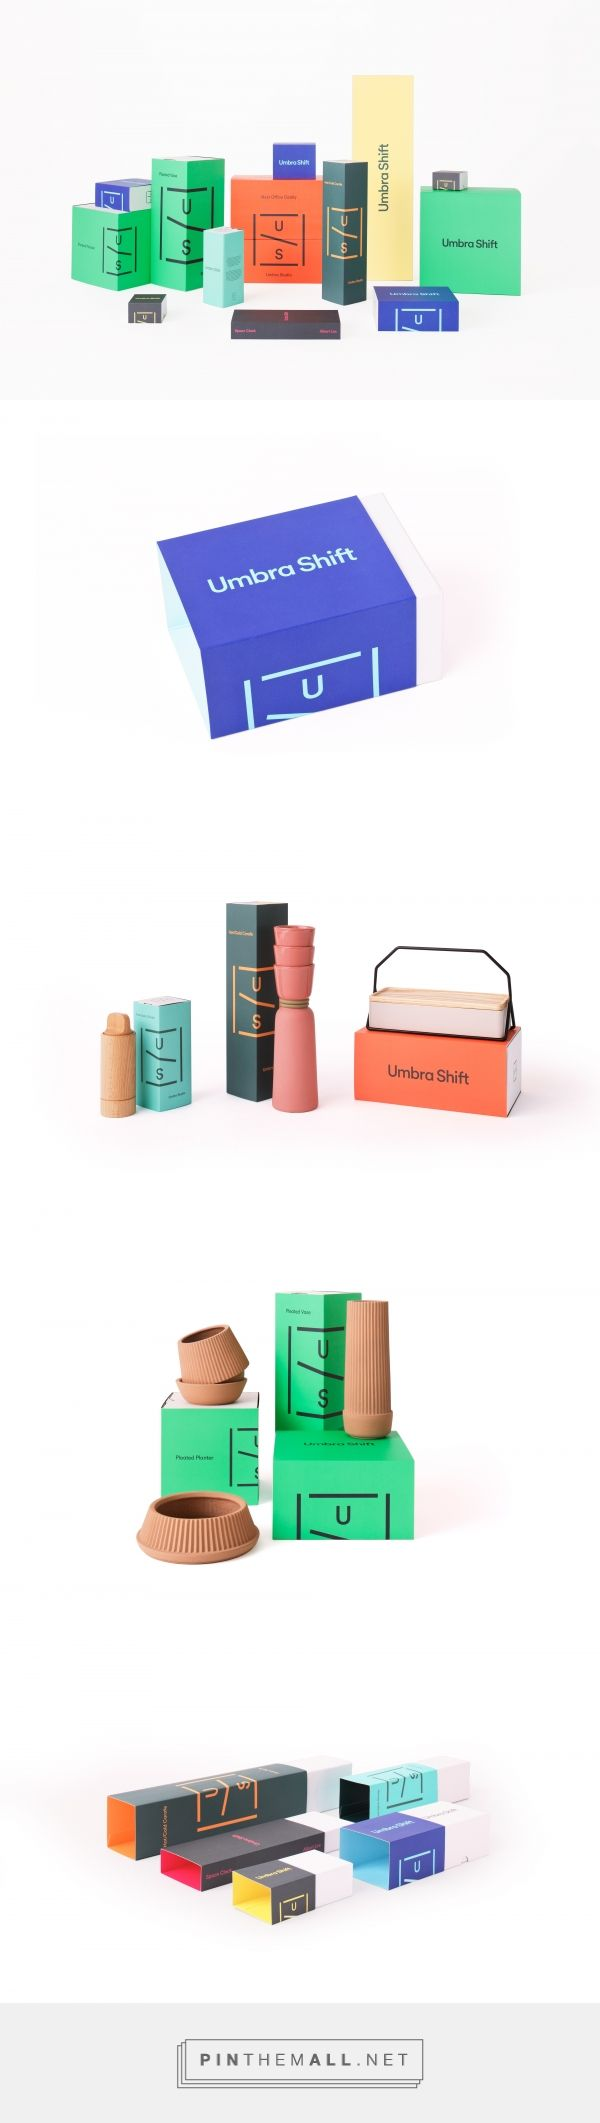 Umbra Shift is an extension of Umbra that focuses on contemporary influences in the design community. For more than 30 years, Umbra has broken the mould by creating entirely new categories that apply thoughtful design to everyday items. | Designed by Post Projects #packaging #branding